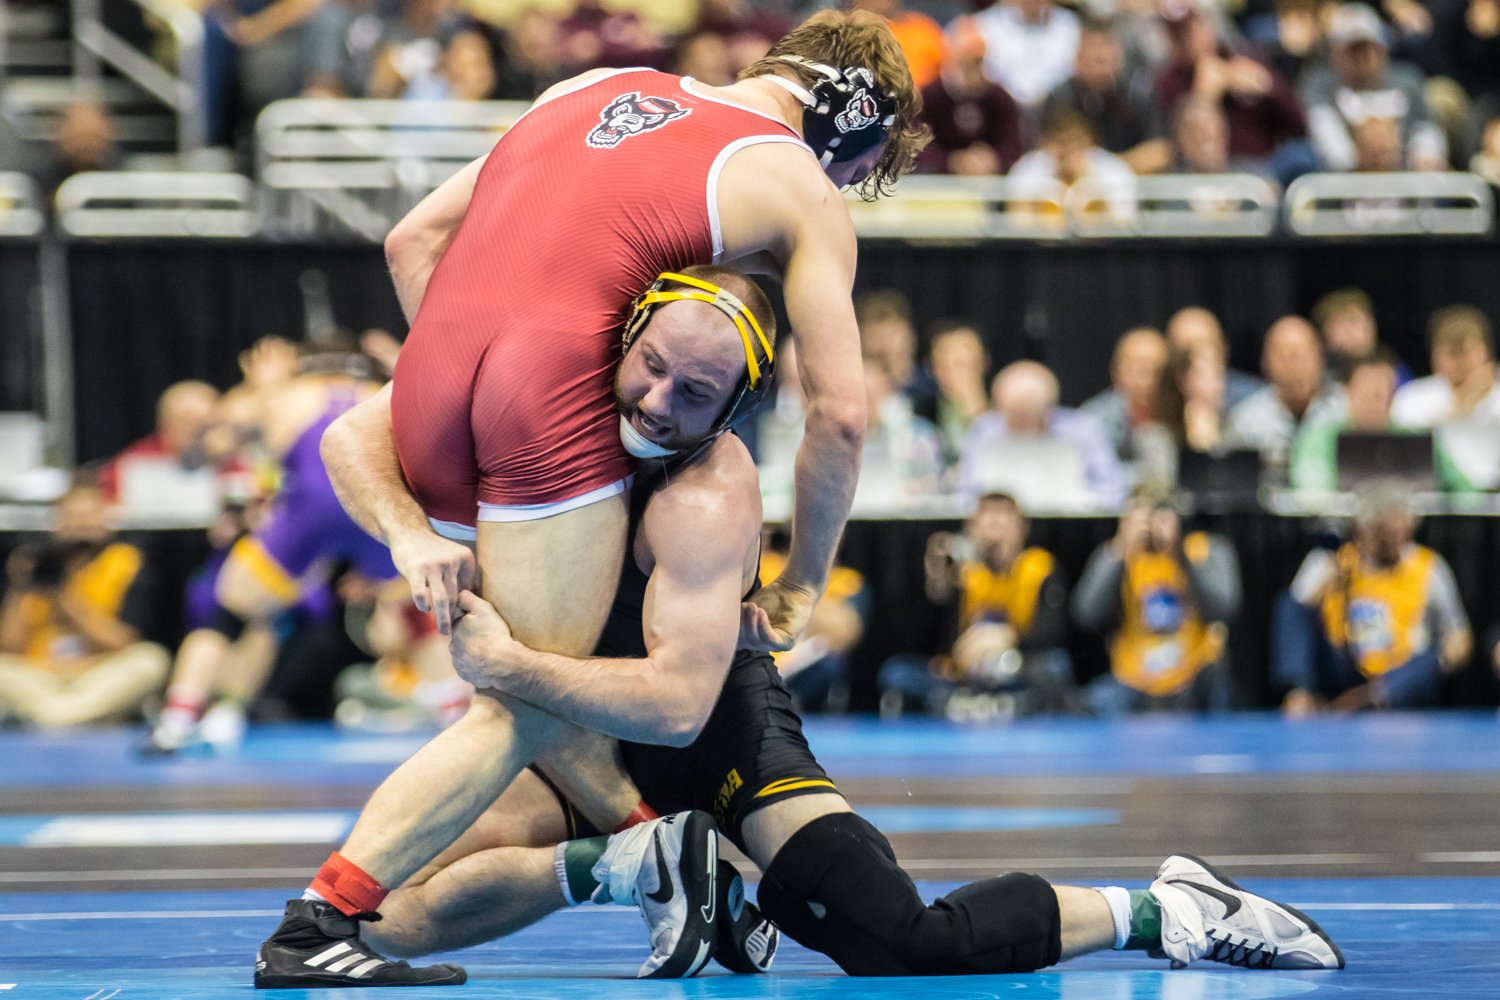 Iowa%E2%80%99s+165-pound+Alex+Marinelli+wrestles+NC+State%E2%80%99s+Thomas+Bullard+during+the+second+session+of+the+2019+NCAA+D1+Wrestling+Championships+at+PPG+Paints+Arena+in+Pittsburgh%2C+PA+on+Thursday%2C+March+21%2C+2019.+Marinelli+won+by+major+decision%2C+12-4.